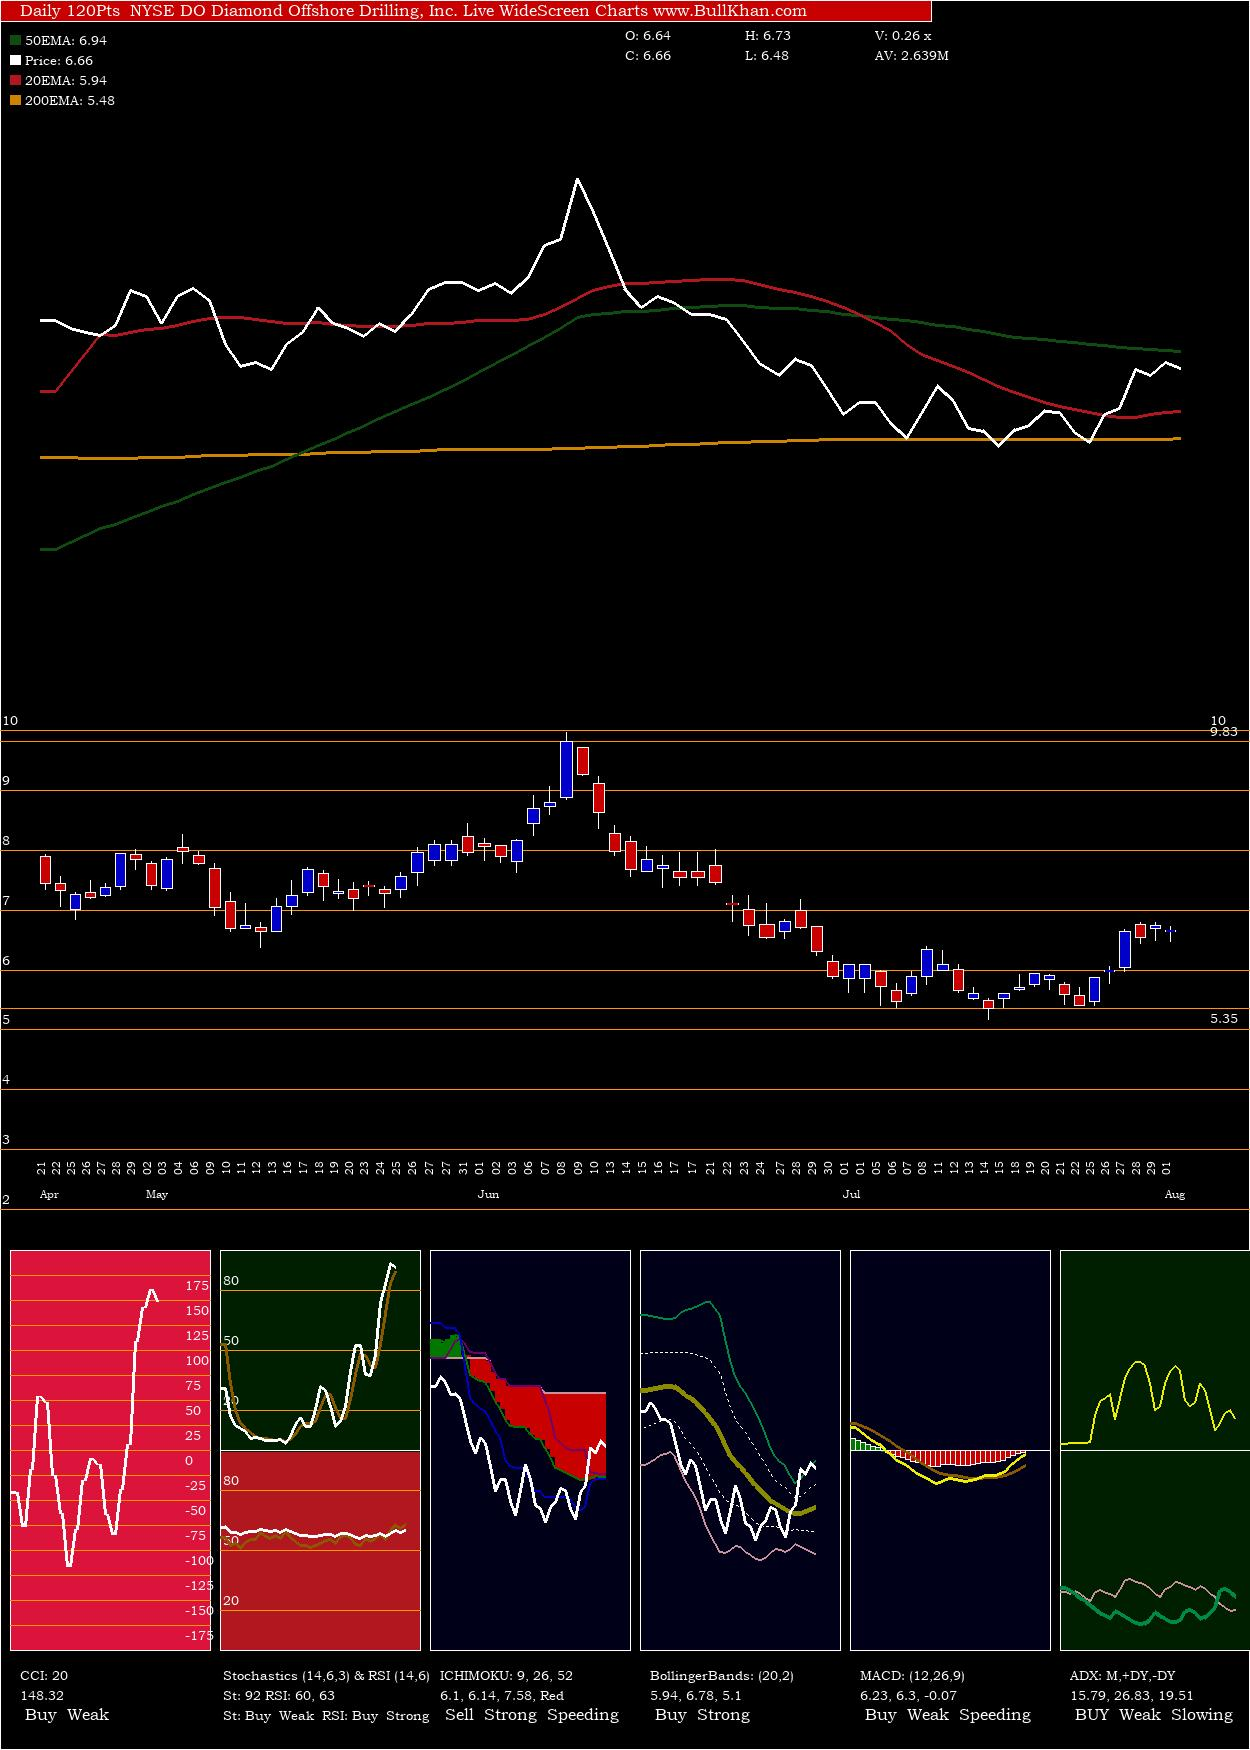 Diamond Offshore Drilling, Inc. charts and indicators